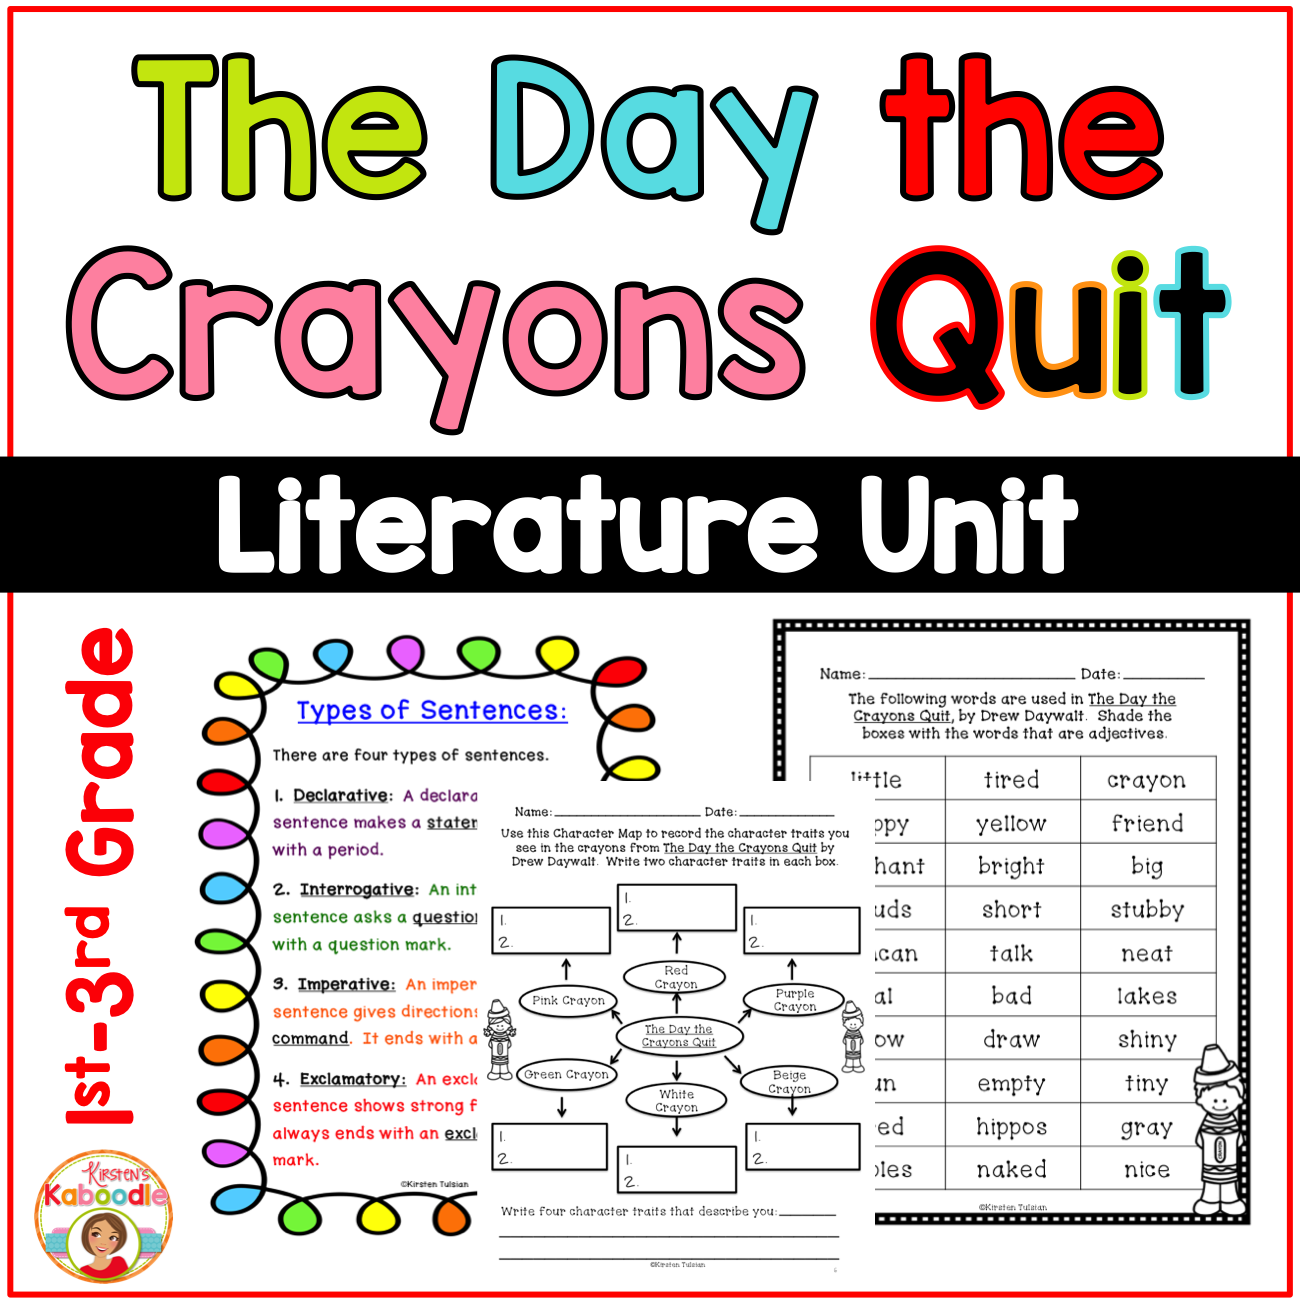 The Day the Crayons Quit Literature Activities